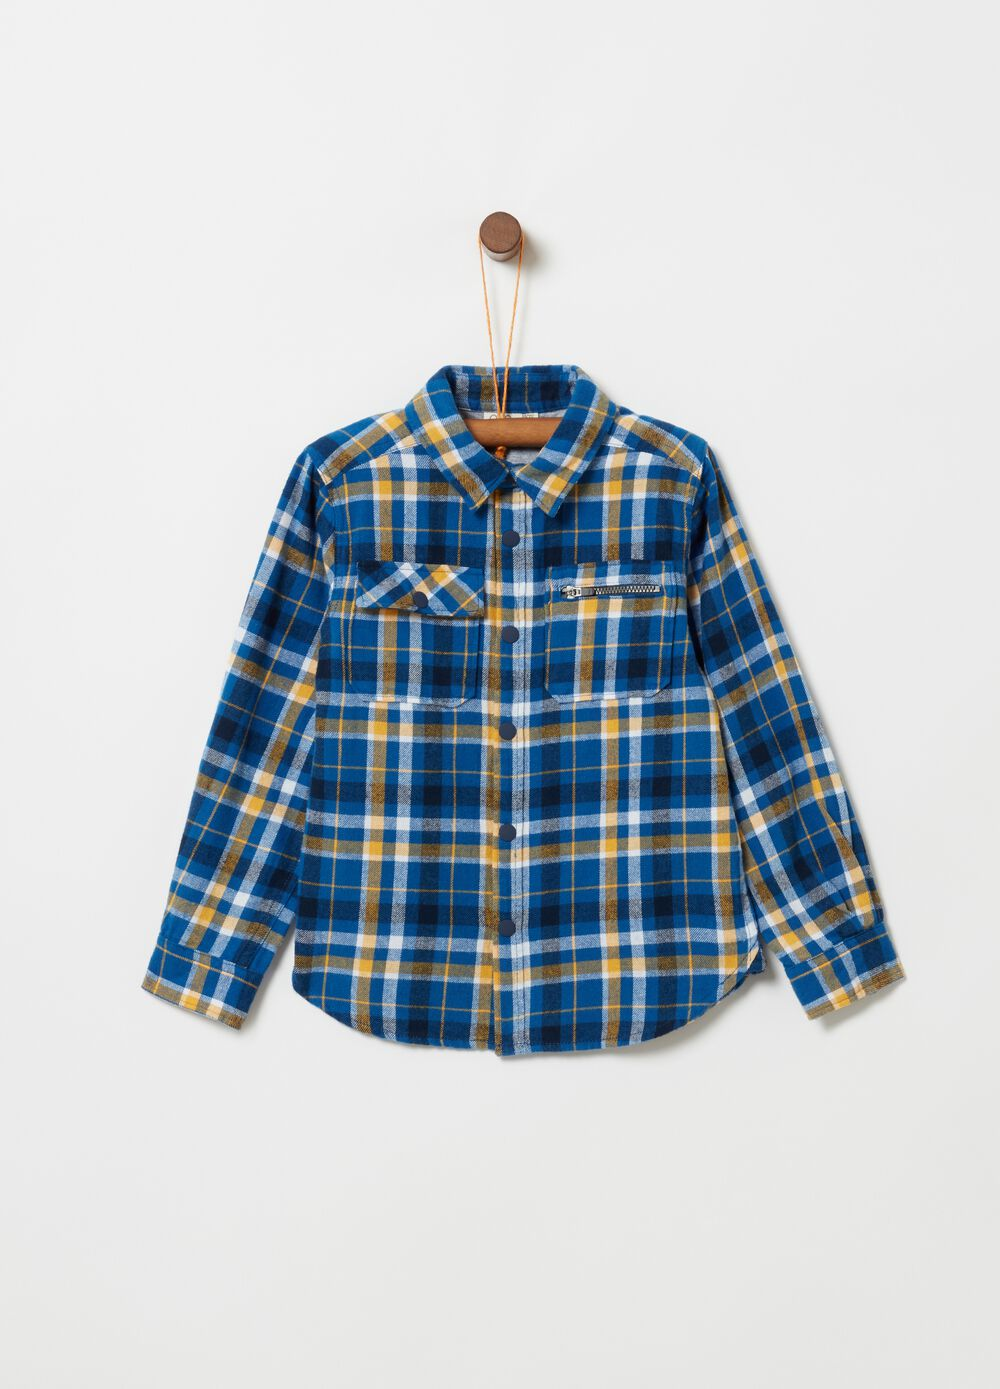 Shirt with pockets and check pattern